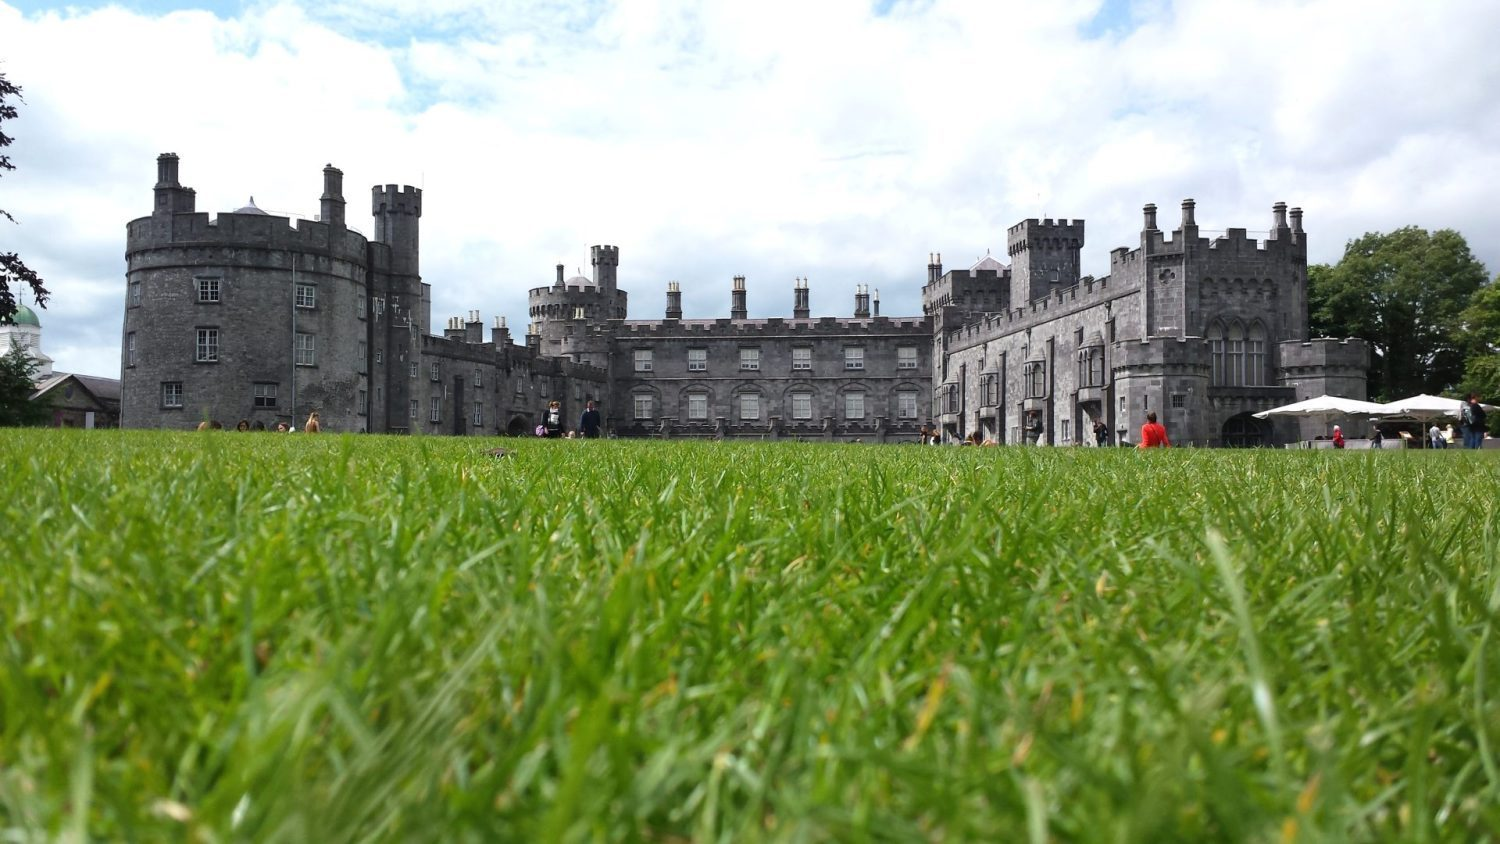 Kilkenny Castle in the heart of the Ancient City of Kilkenny once inhabited by the Vikings